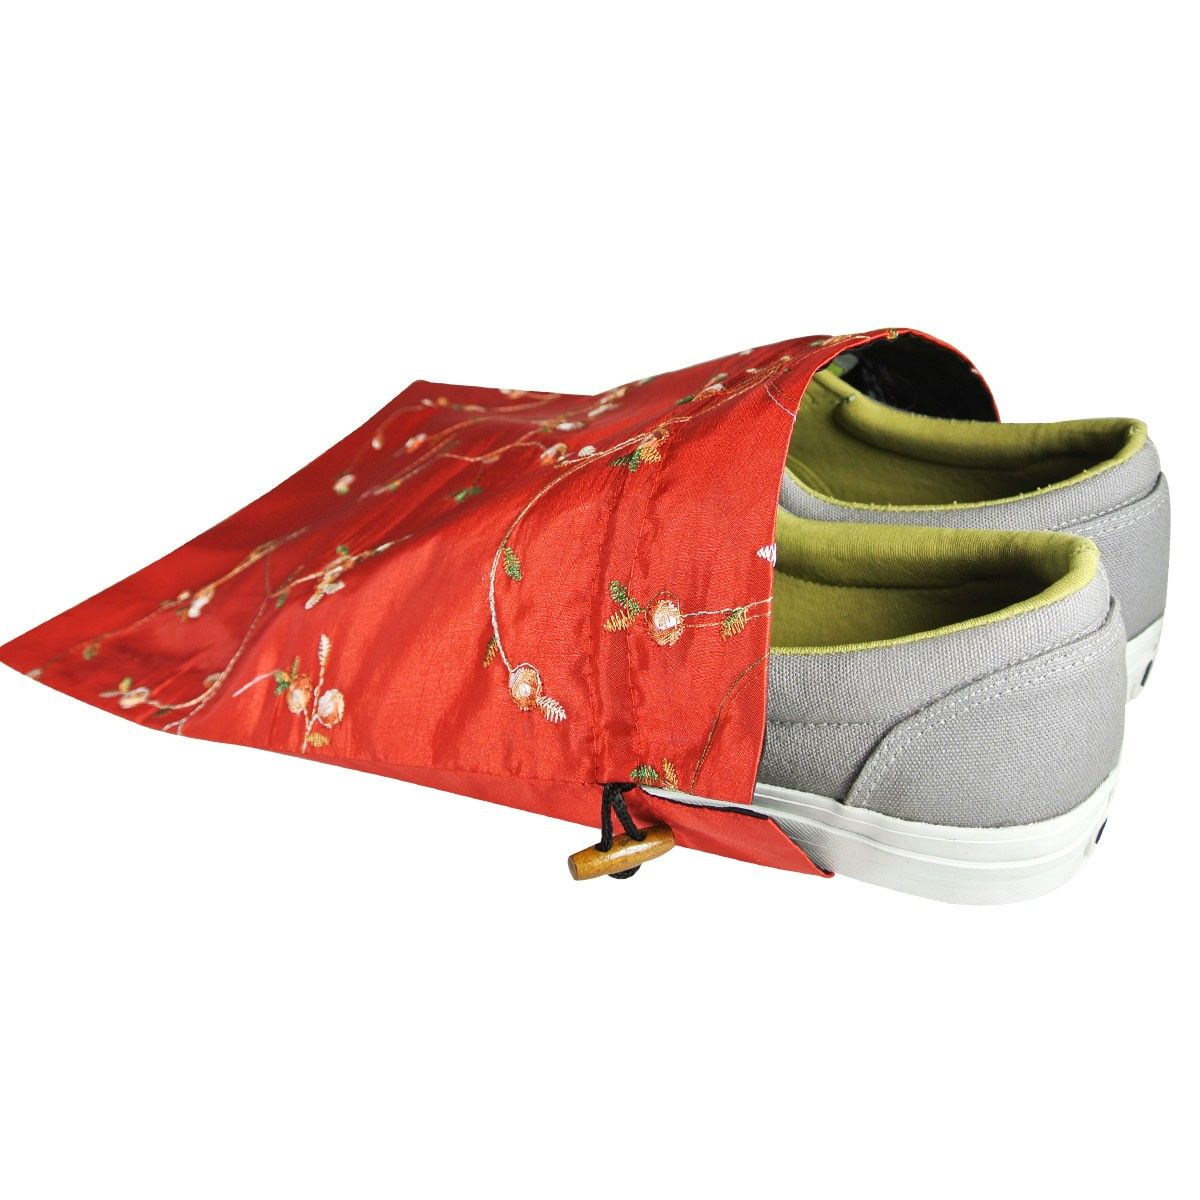 Beautiful-embroidered Silk Travel Bag For Shoes Assorted 1 Unit - Wrapables